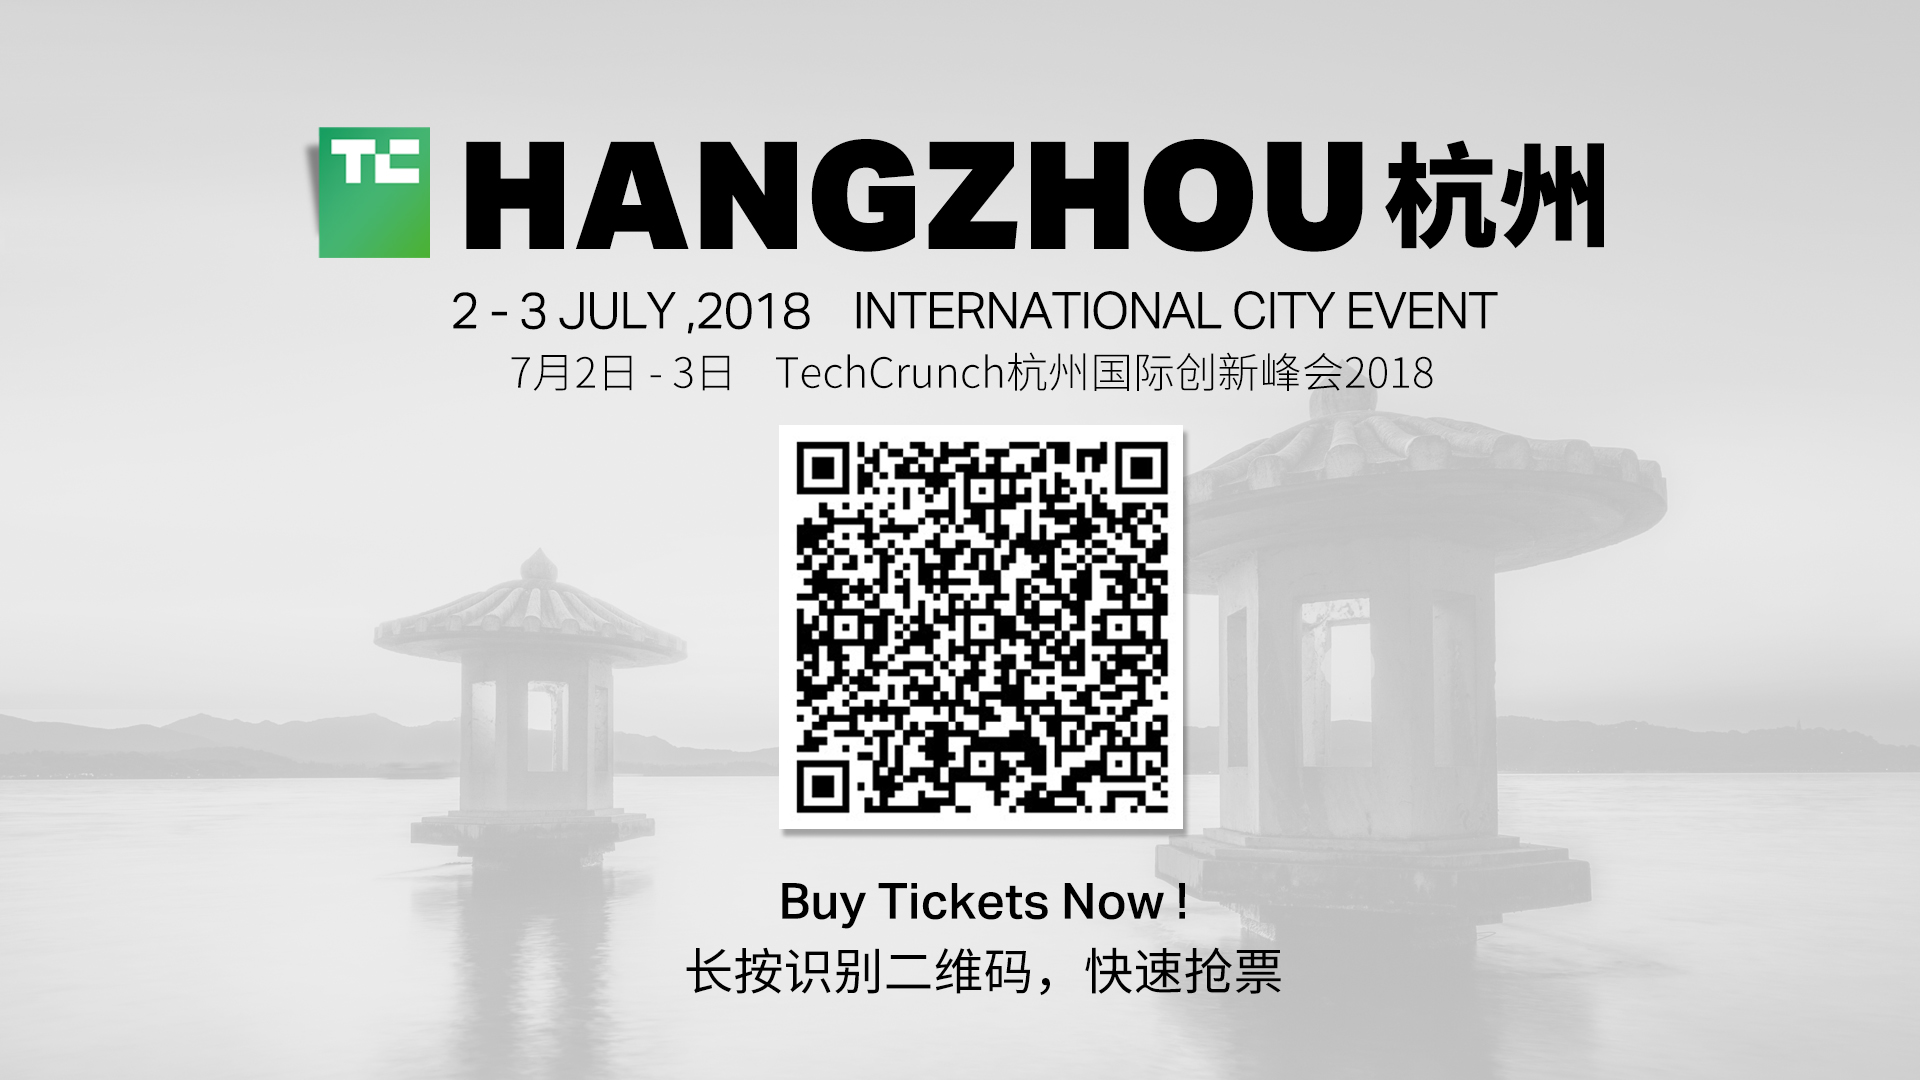 TechCrunch Hangzhou